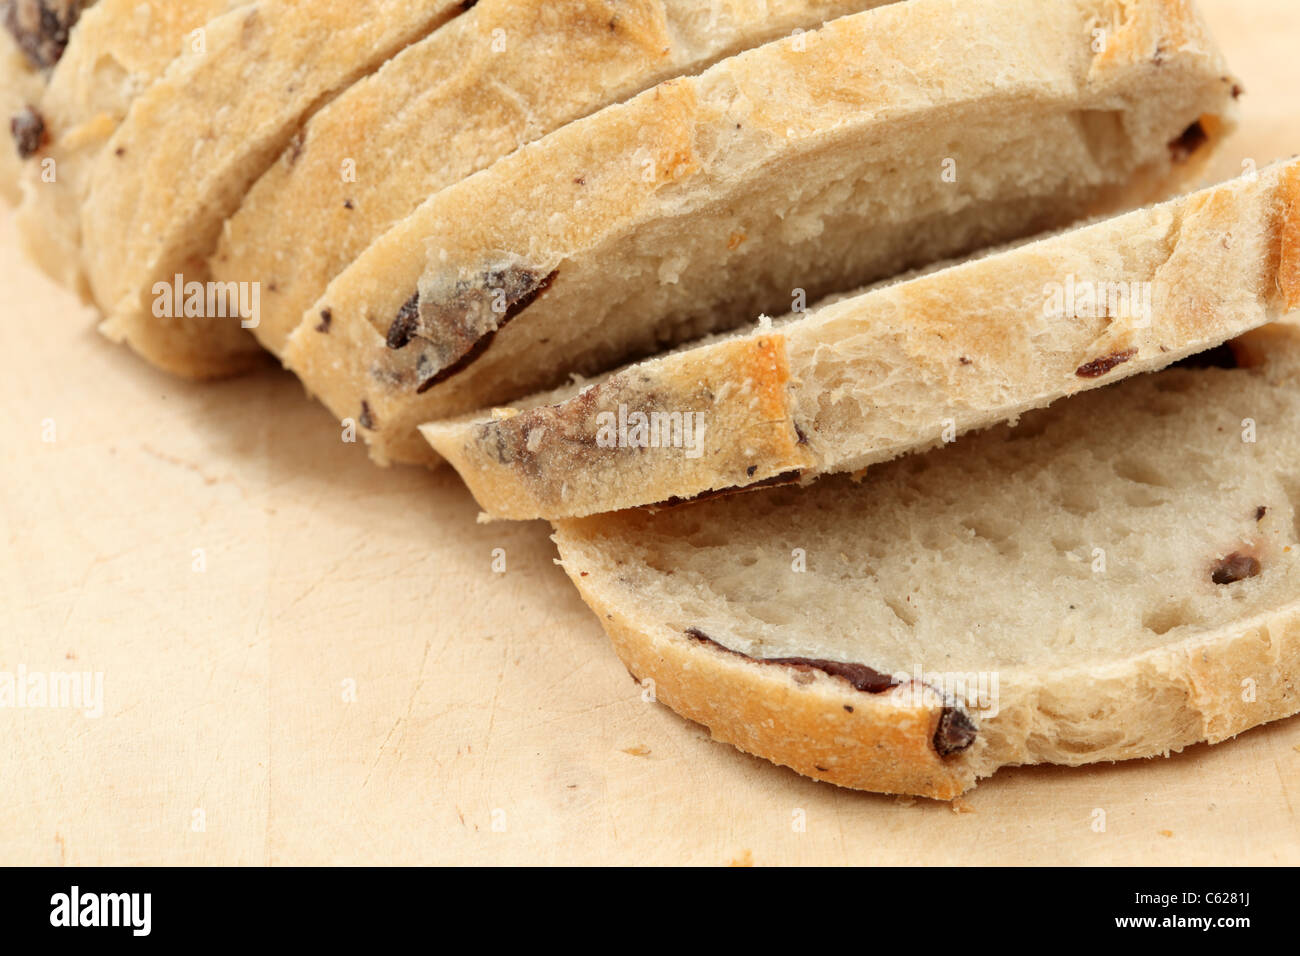 Closeup of traditional Italian olive bread - Stock Image